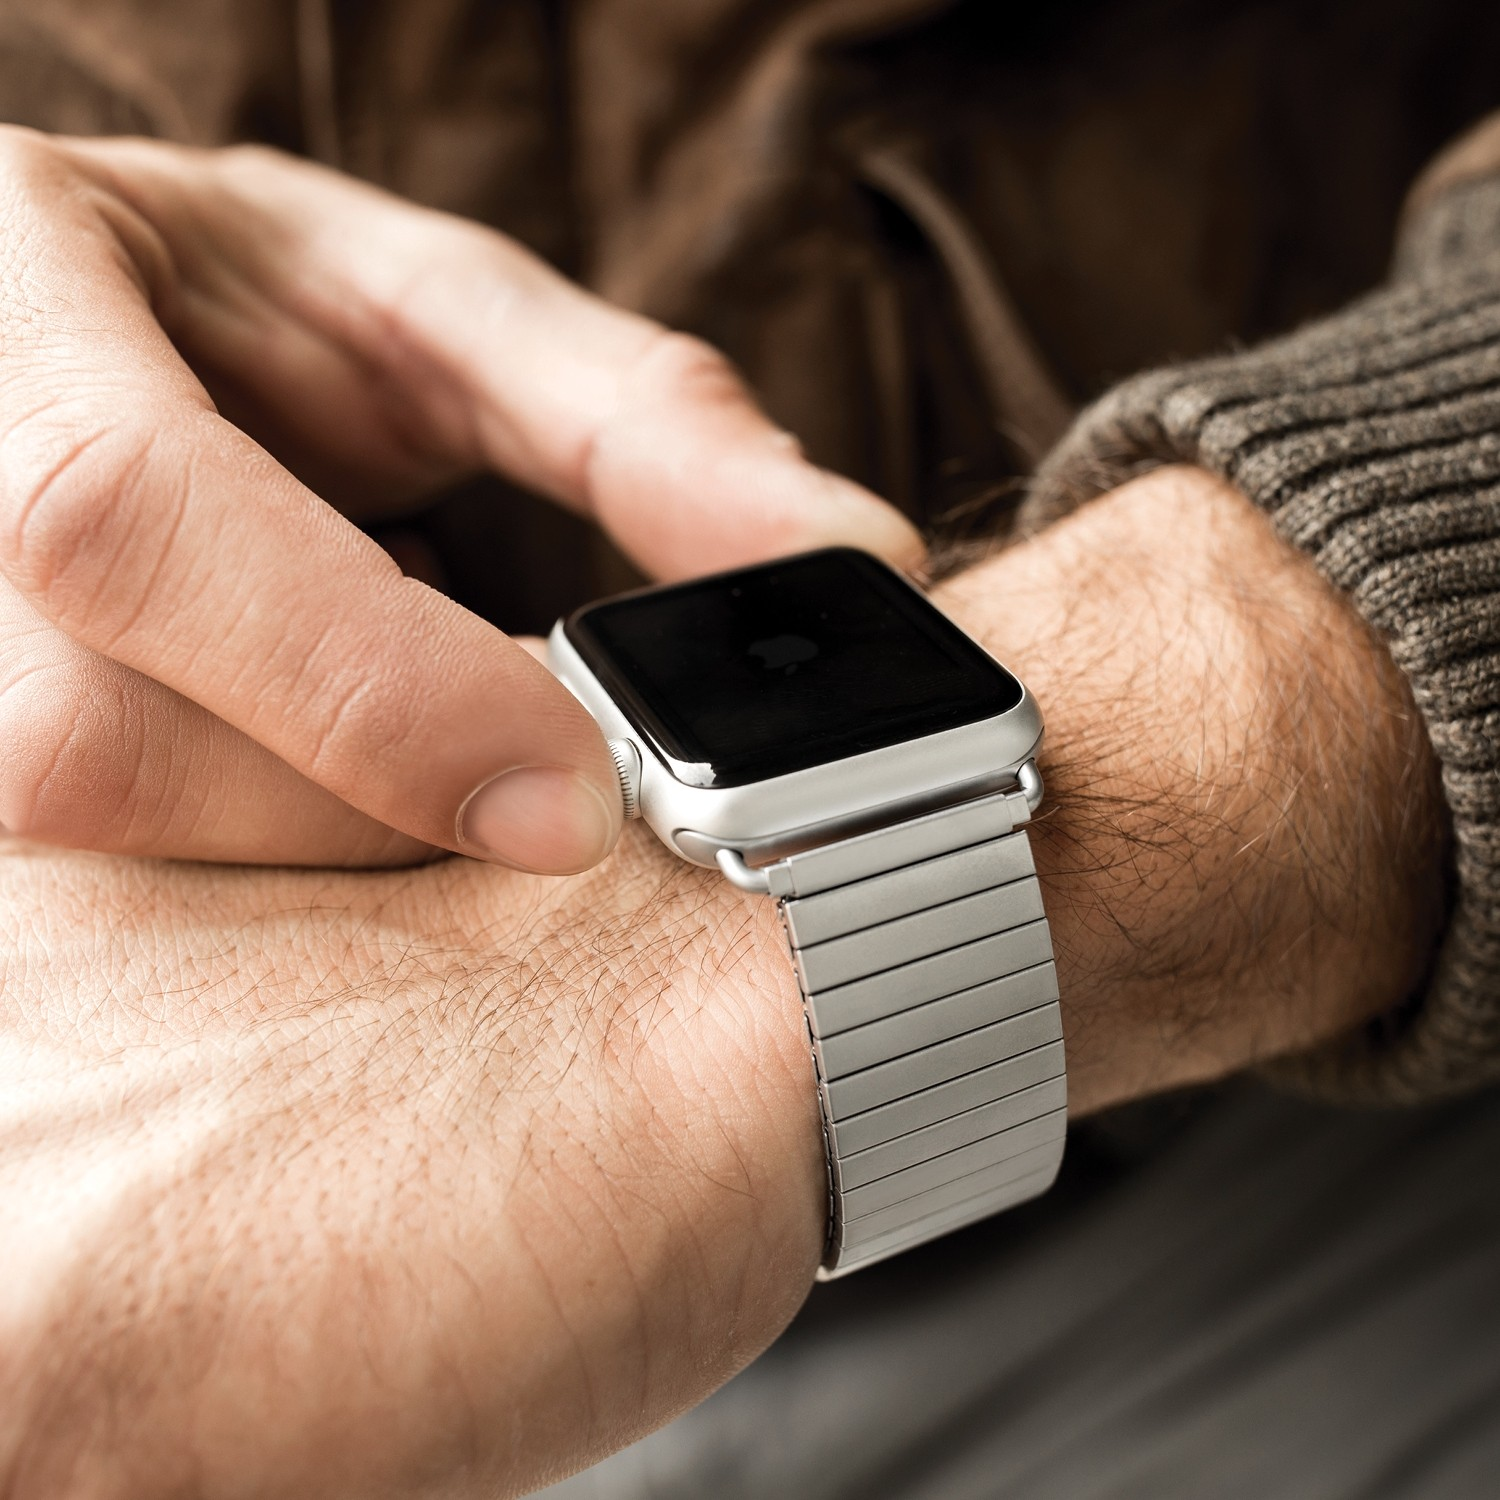 Twist-O-Flex Brushed Stainless Steel Apple Watch band. Photo courtesy of Speidel.